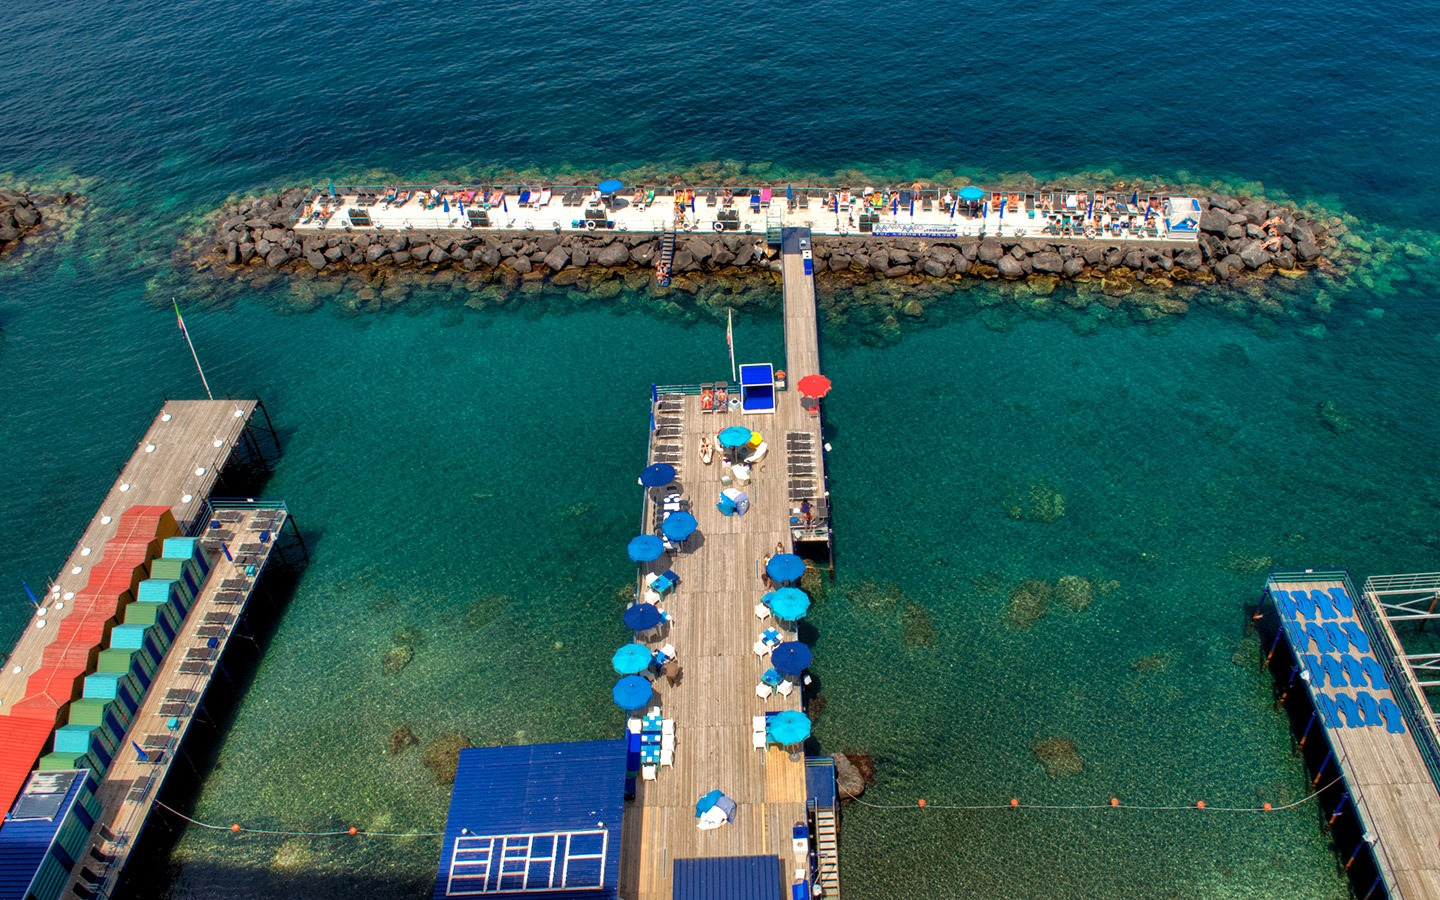 Sunbathing on the pier, one of the best things to do in Sorrento